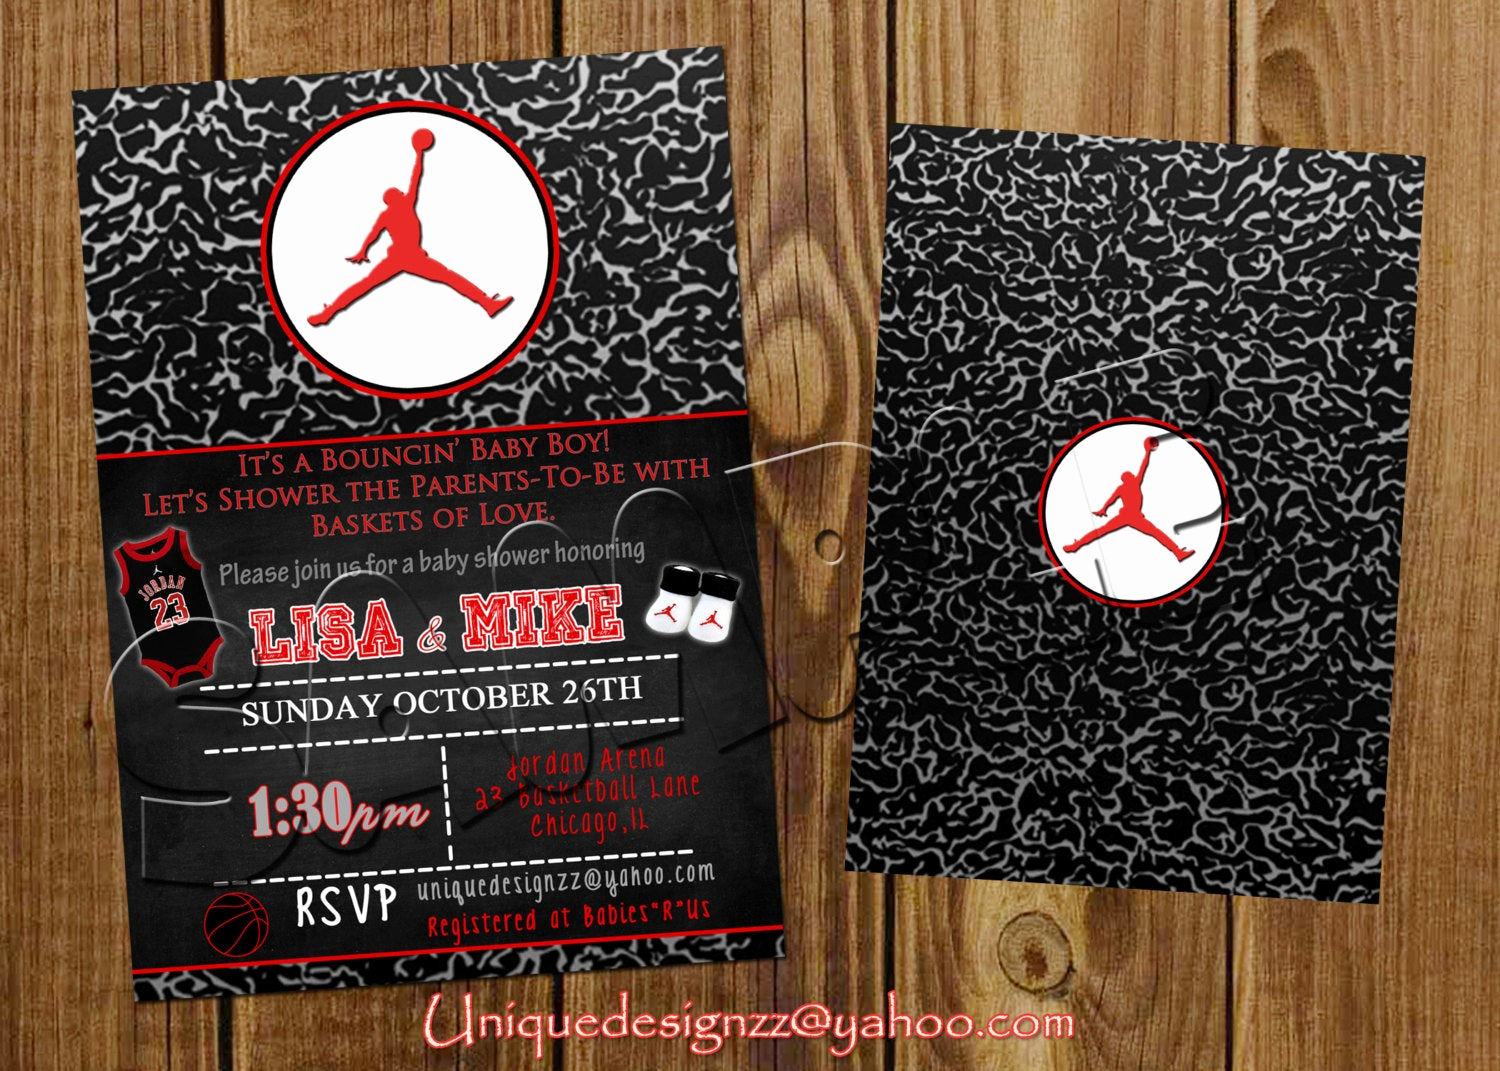 Michaels Baby Shower Invitation Elegant Michael Jordan Baby Shower or Birthday by Uniquedesignzzz